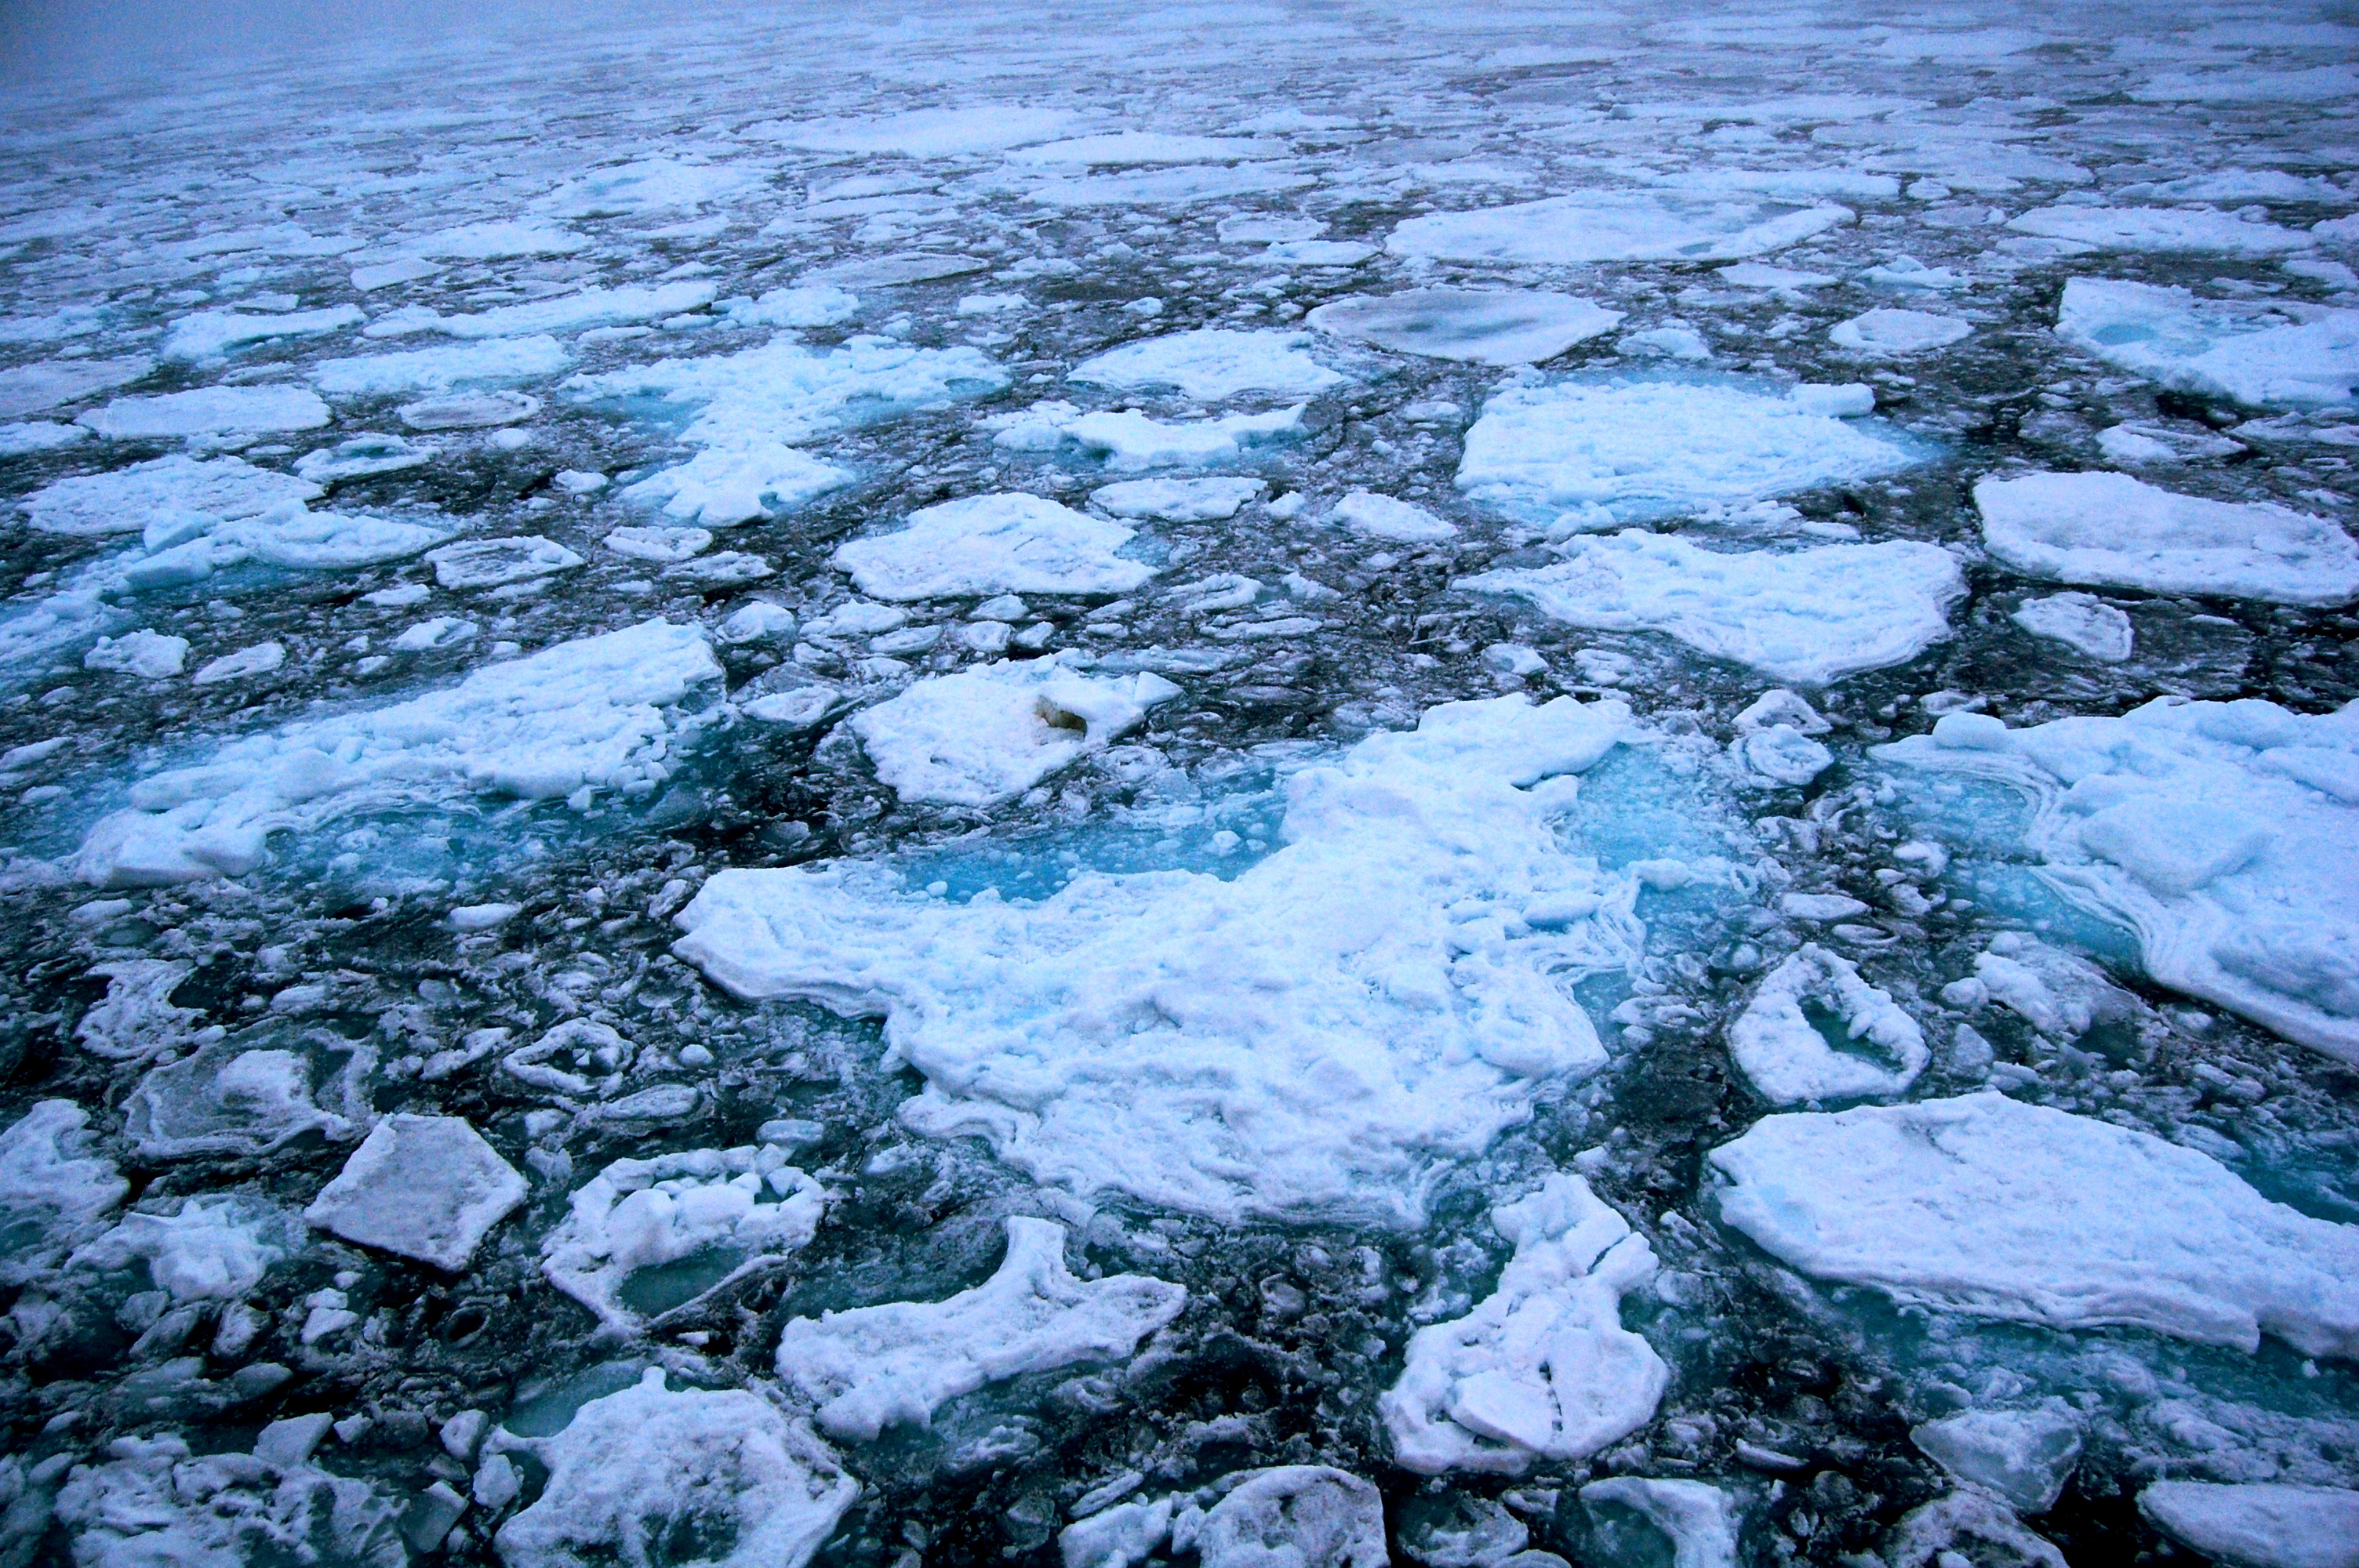 NASA Finds Arctic Ice Melt Forms Clouds that Fuel Warming